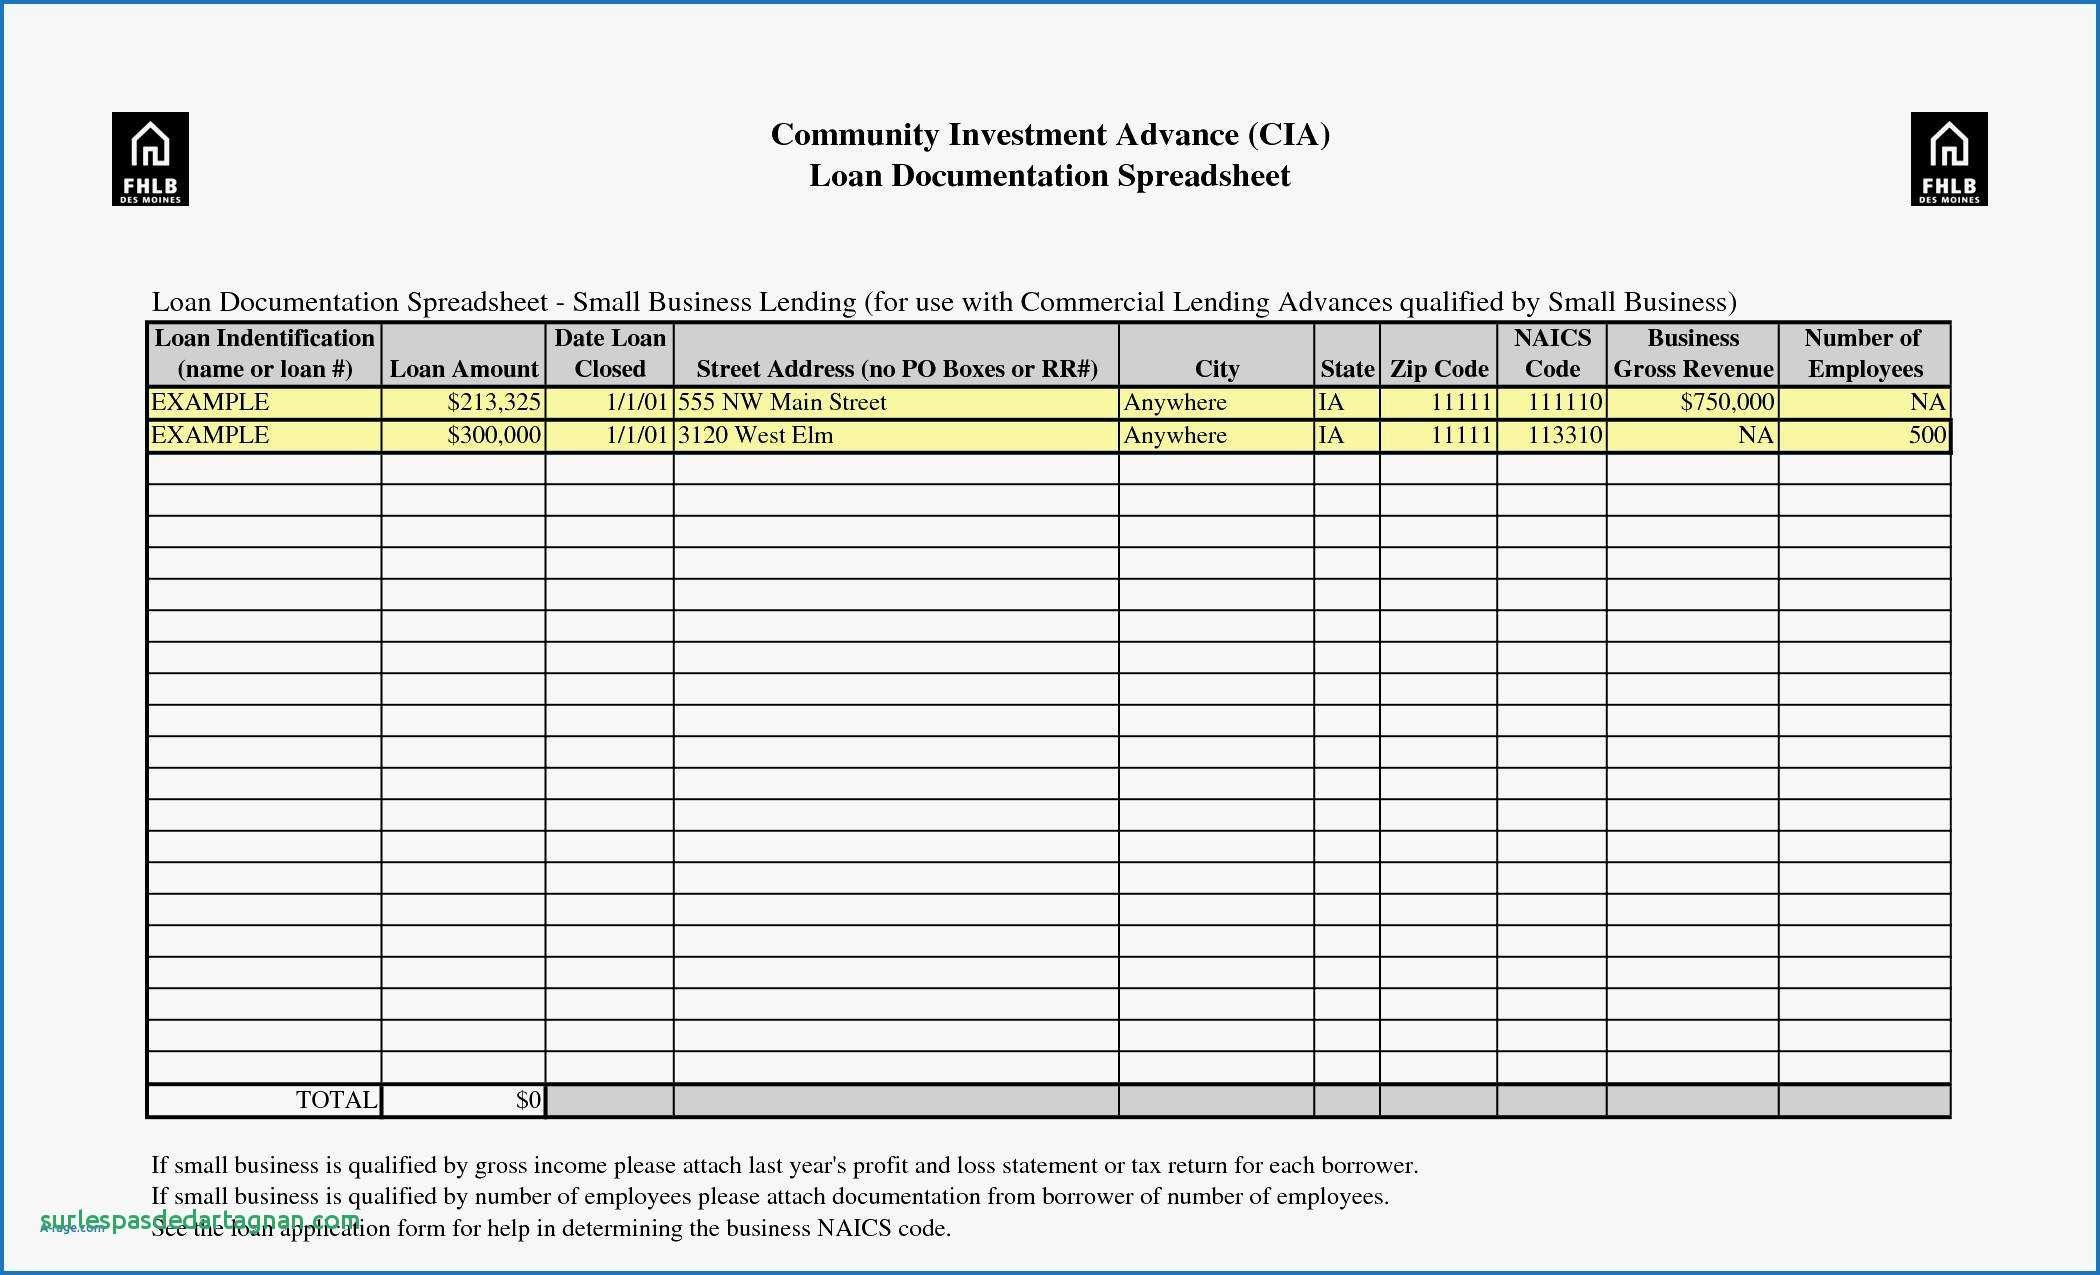 Free Tax Spreadsheet Templates Inside Free Tax Spreadsheet Templates For Inventory Spreadsheet Debt